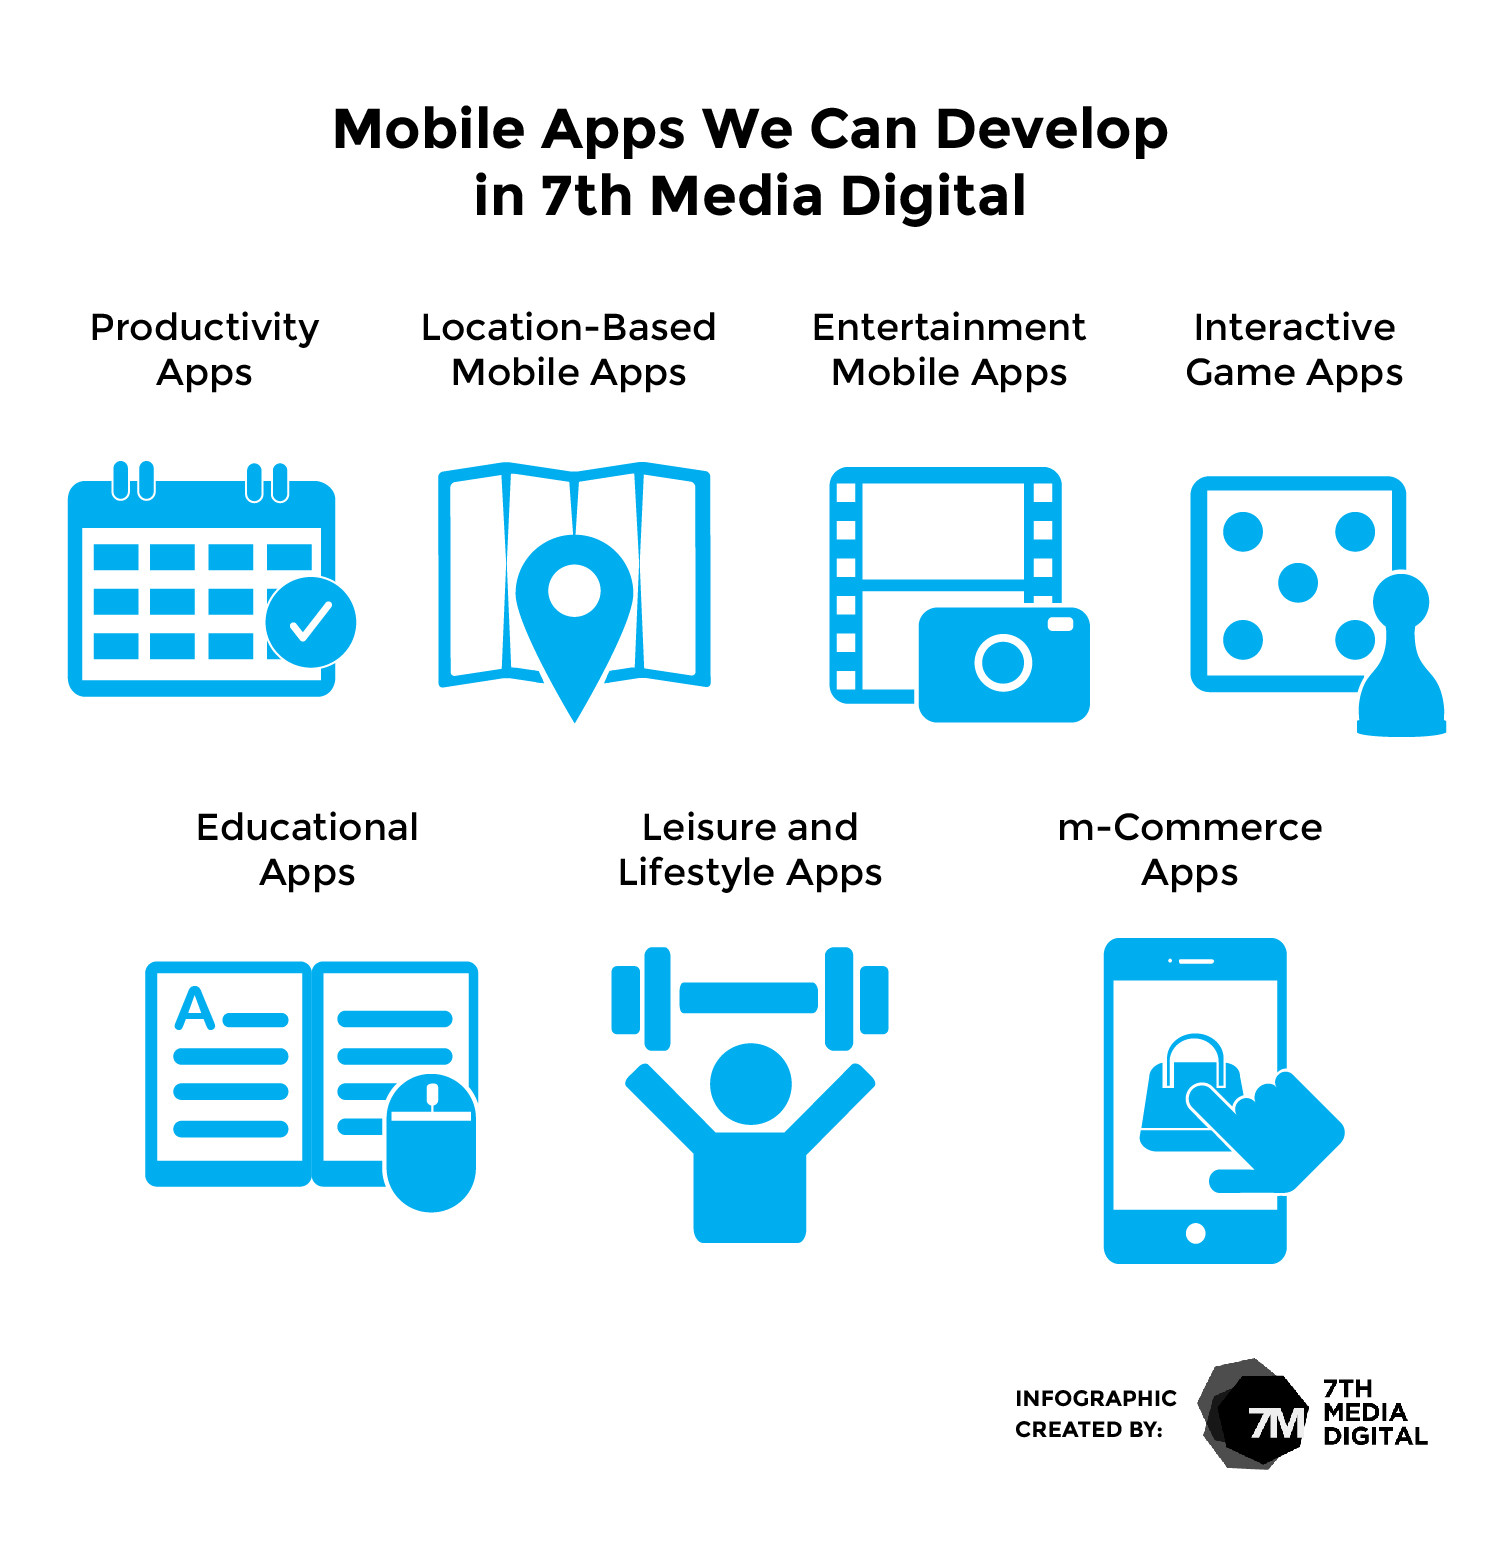 Mobile Apps We Can Develop in 7th Media Digital Infographic